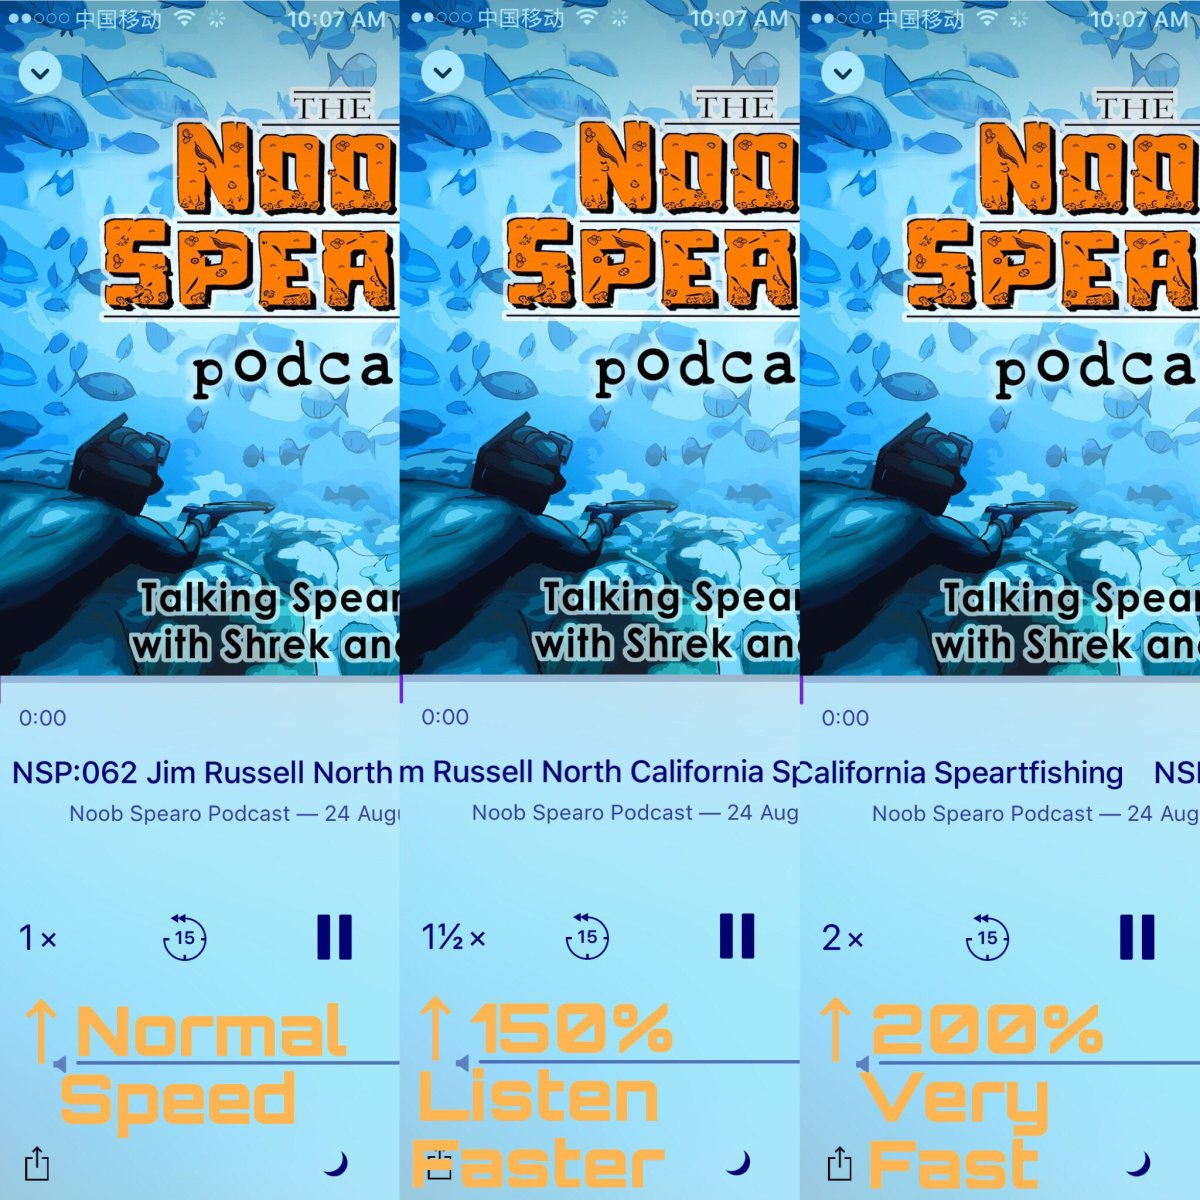 Spearfishing Podcast Listening Tips